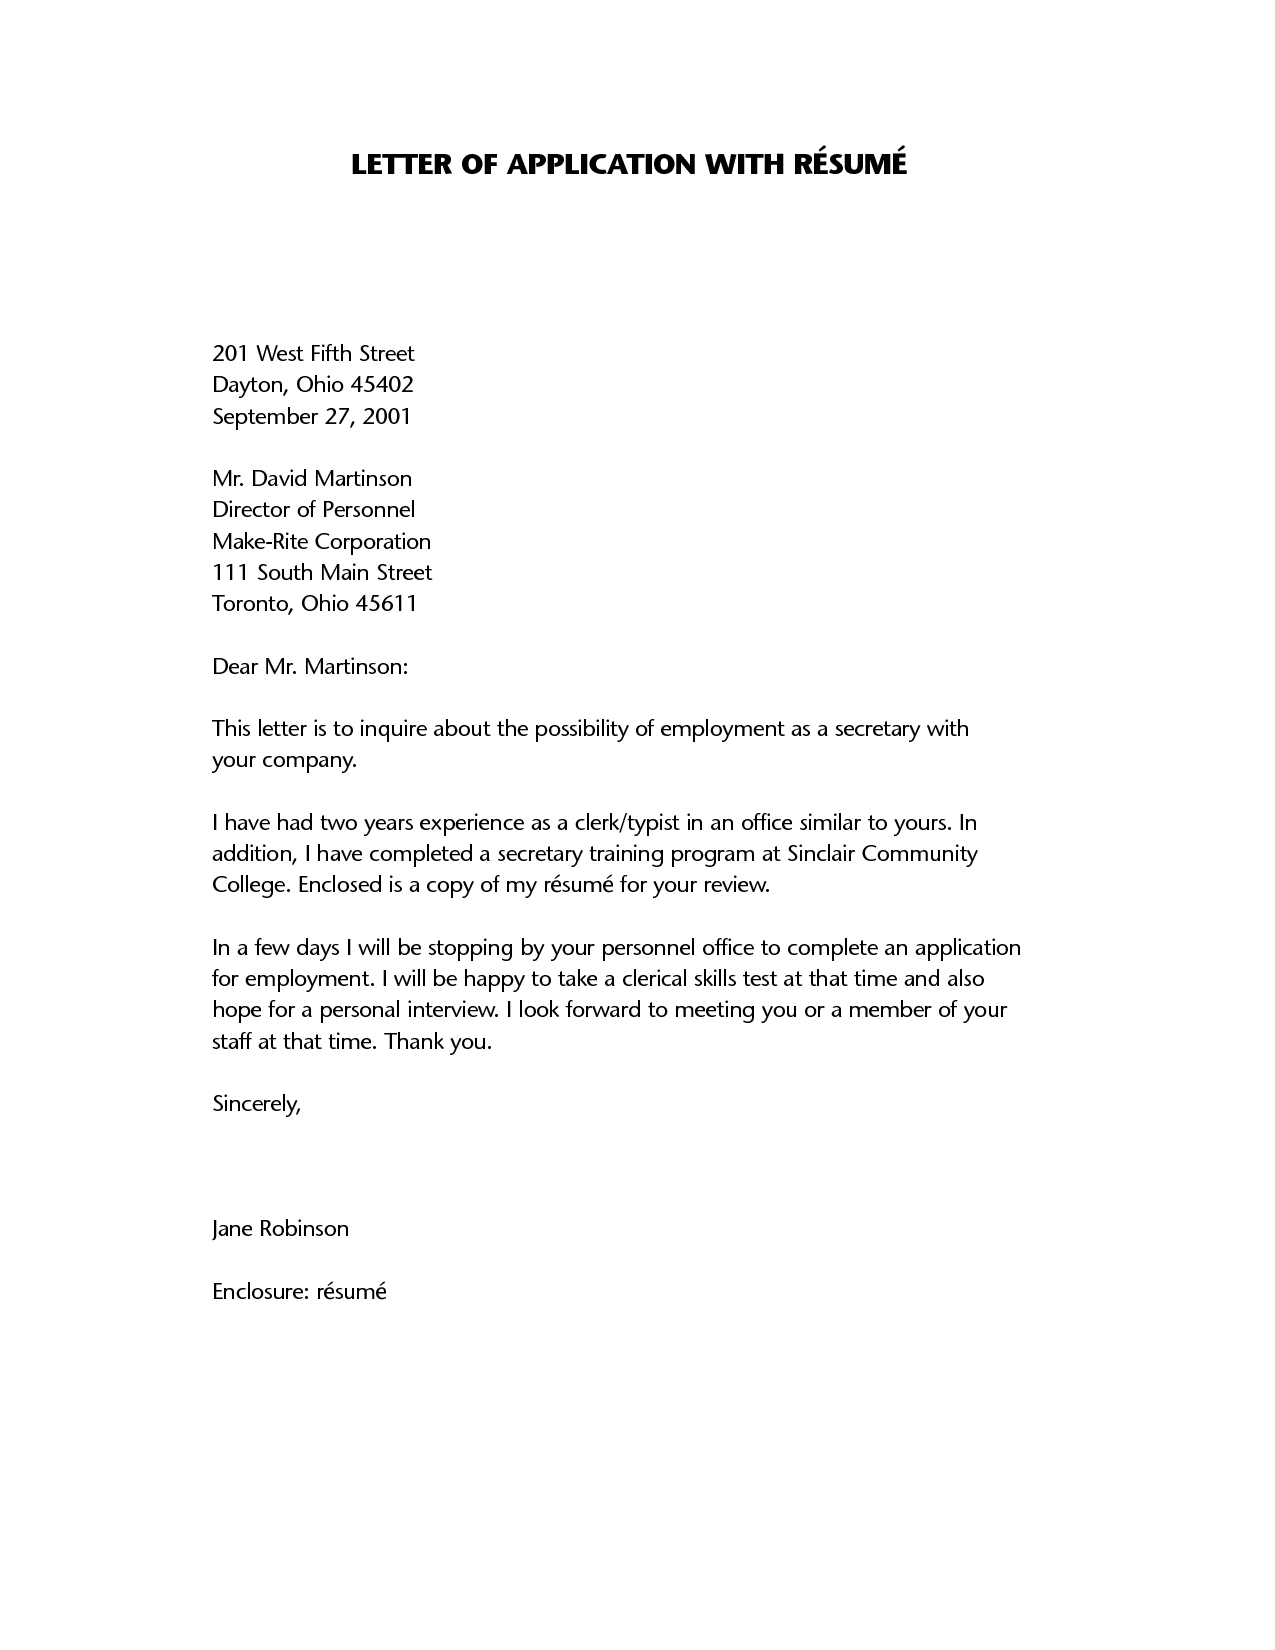 Resume Application Letter A Letter Of Application Is A Document